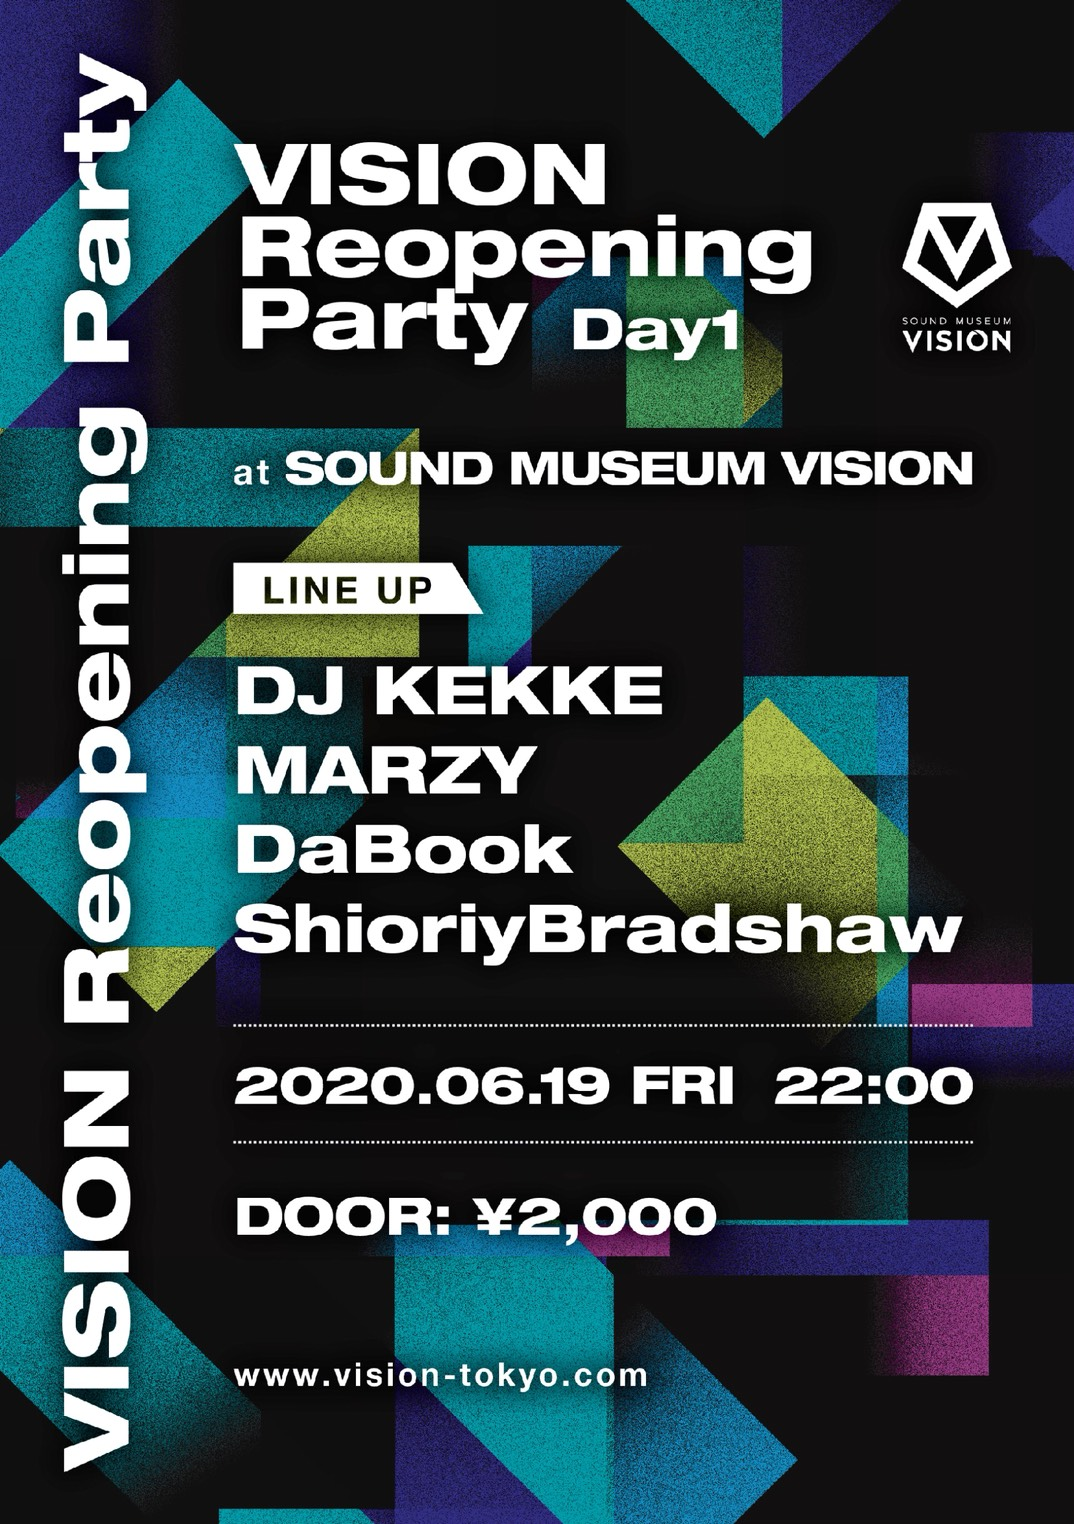 VISION Reopening Party Day1